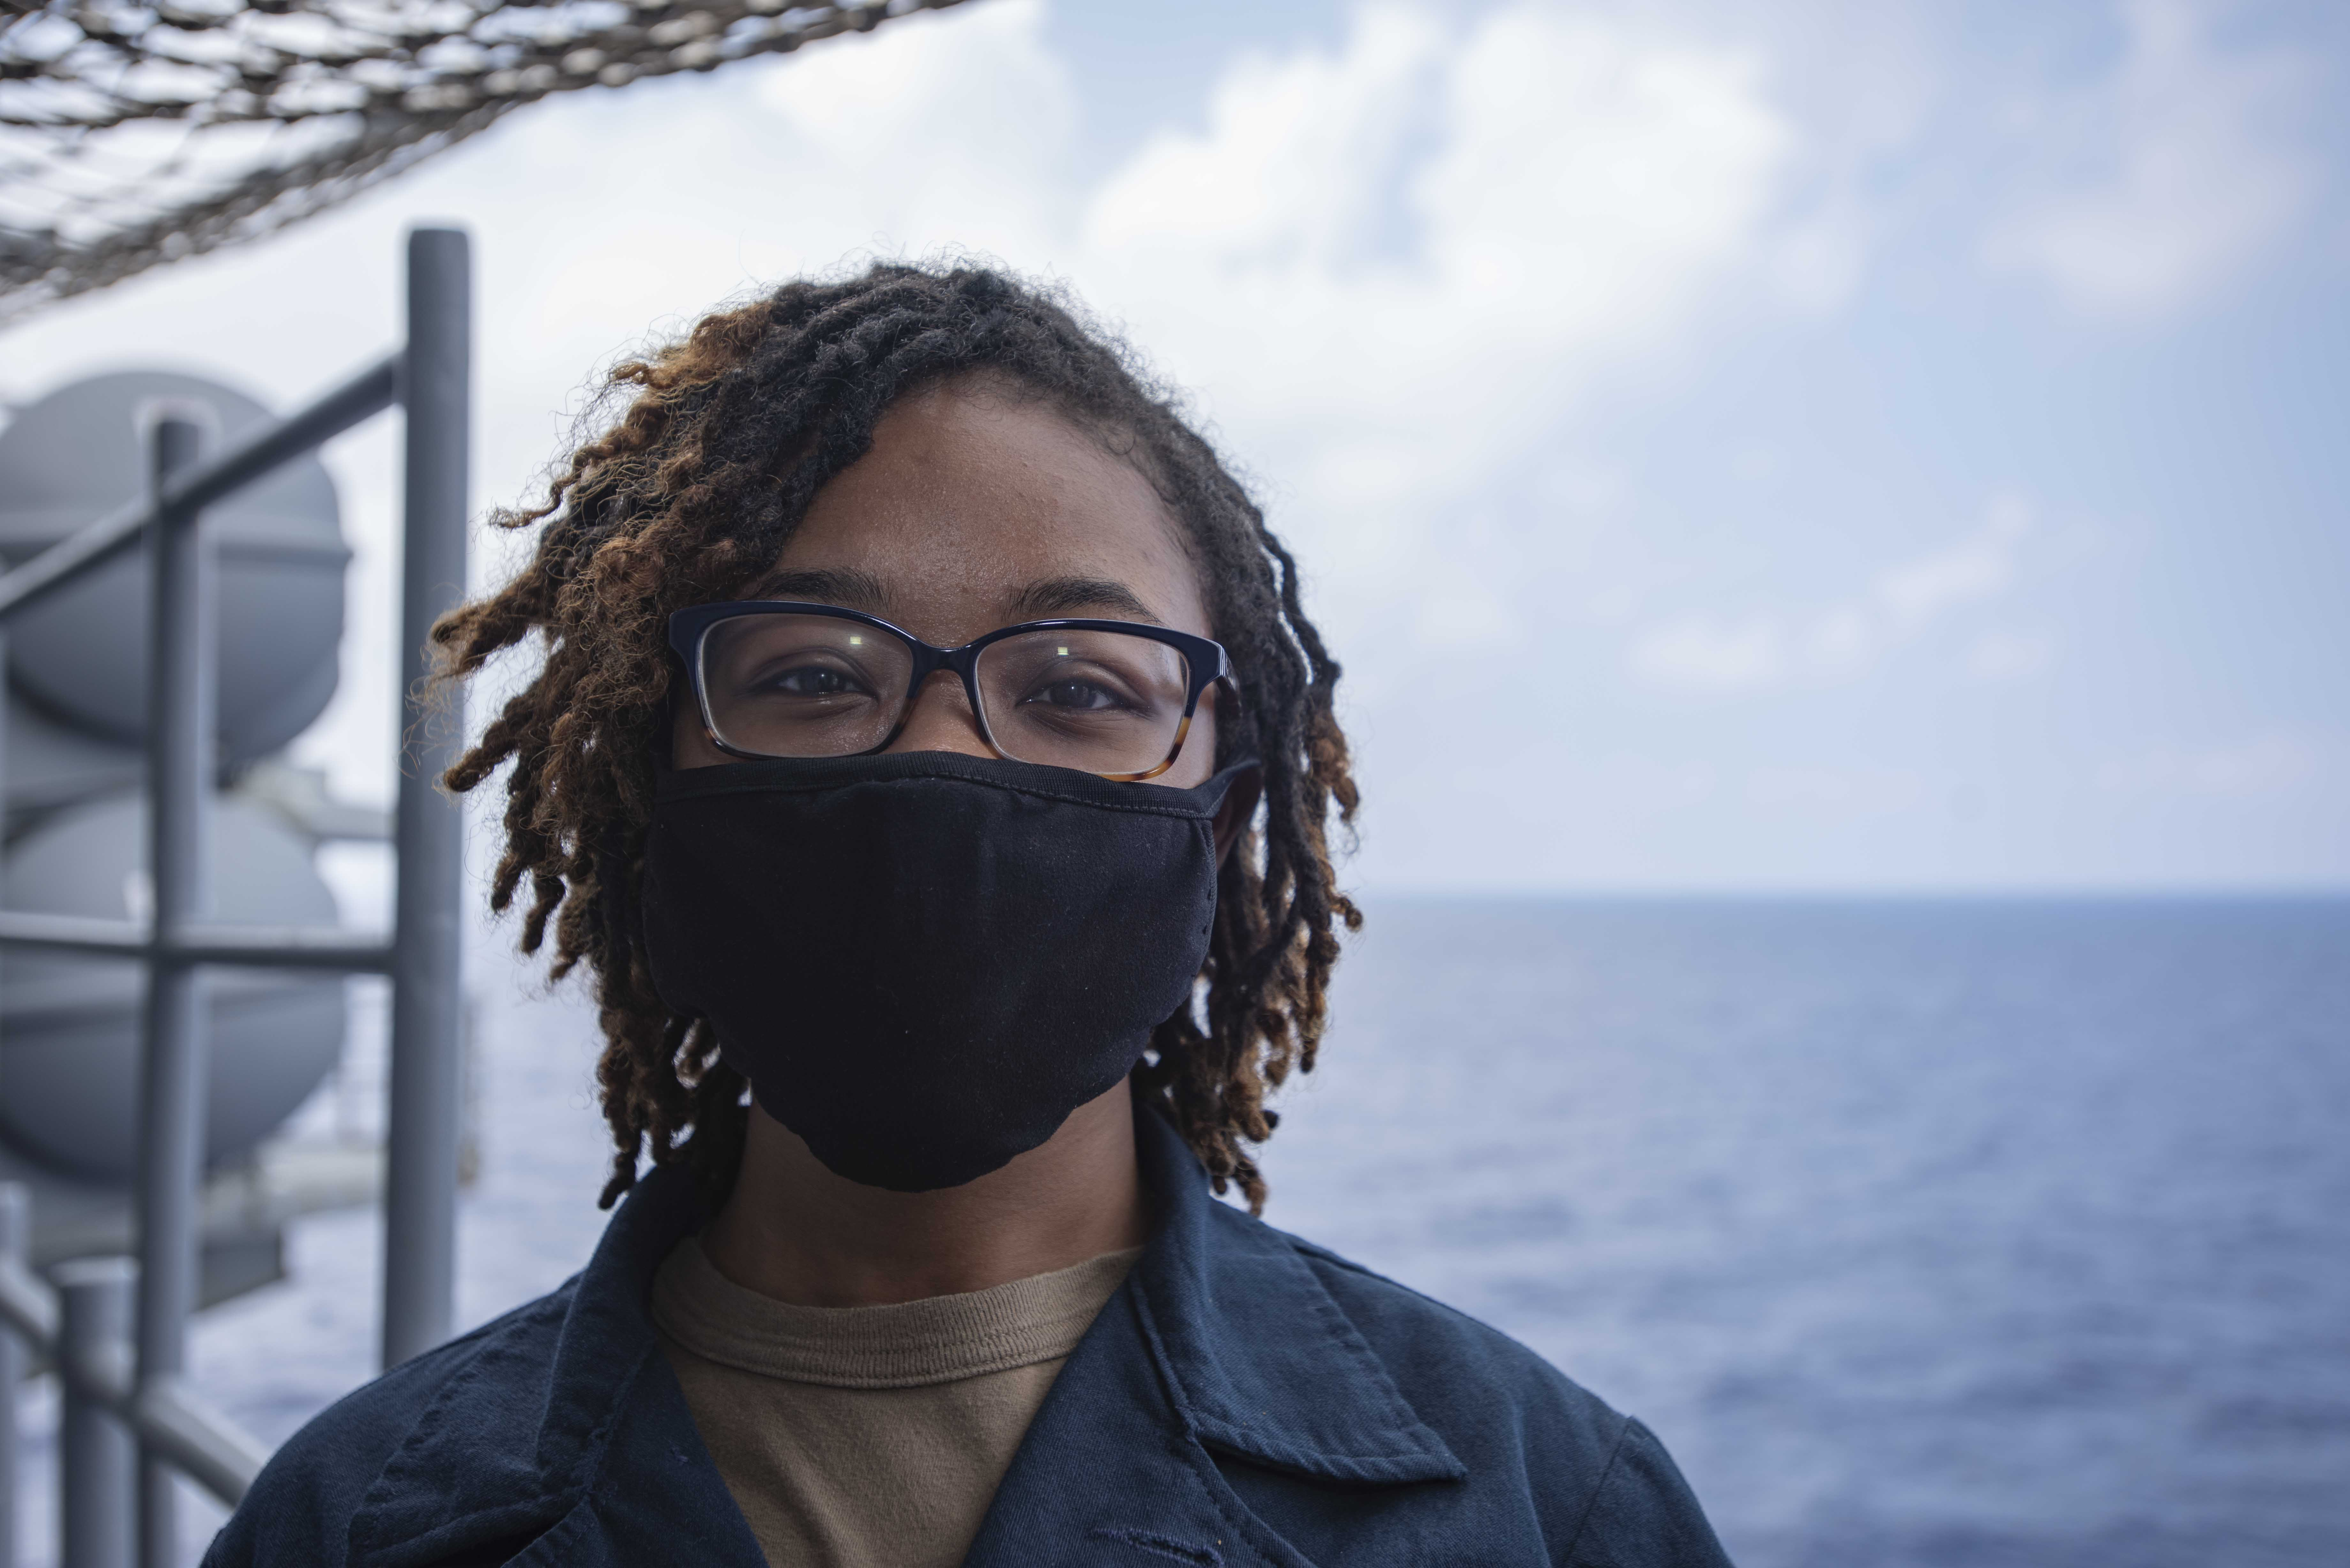 Newport News Native Serves aboard USS Ronald Reagan in the Indo-Pacific Region